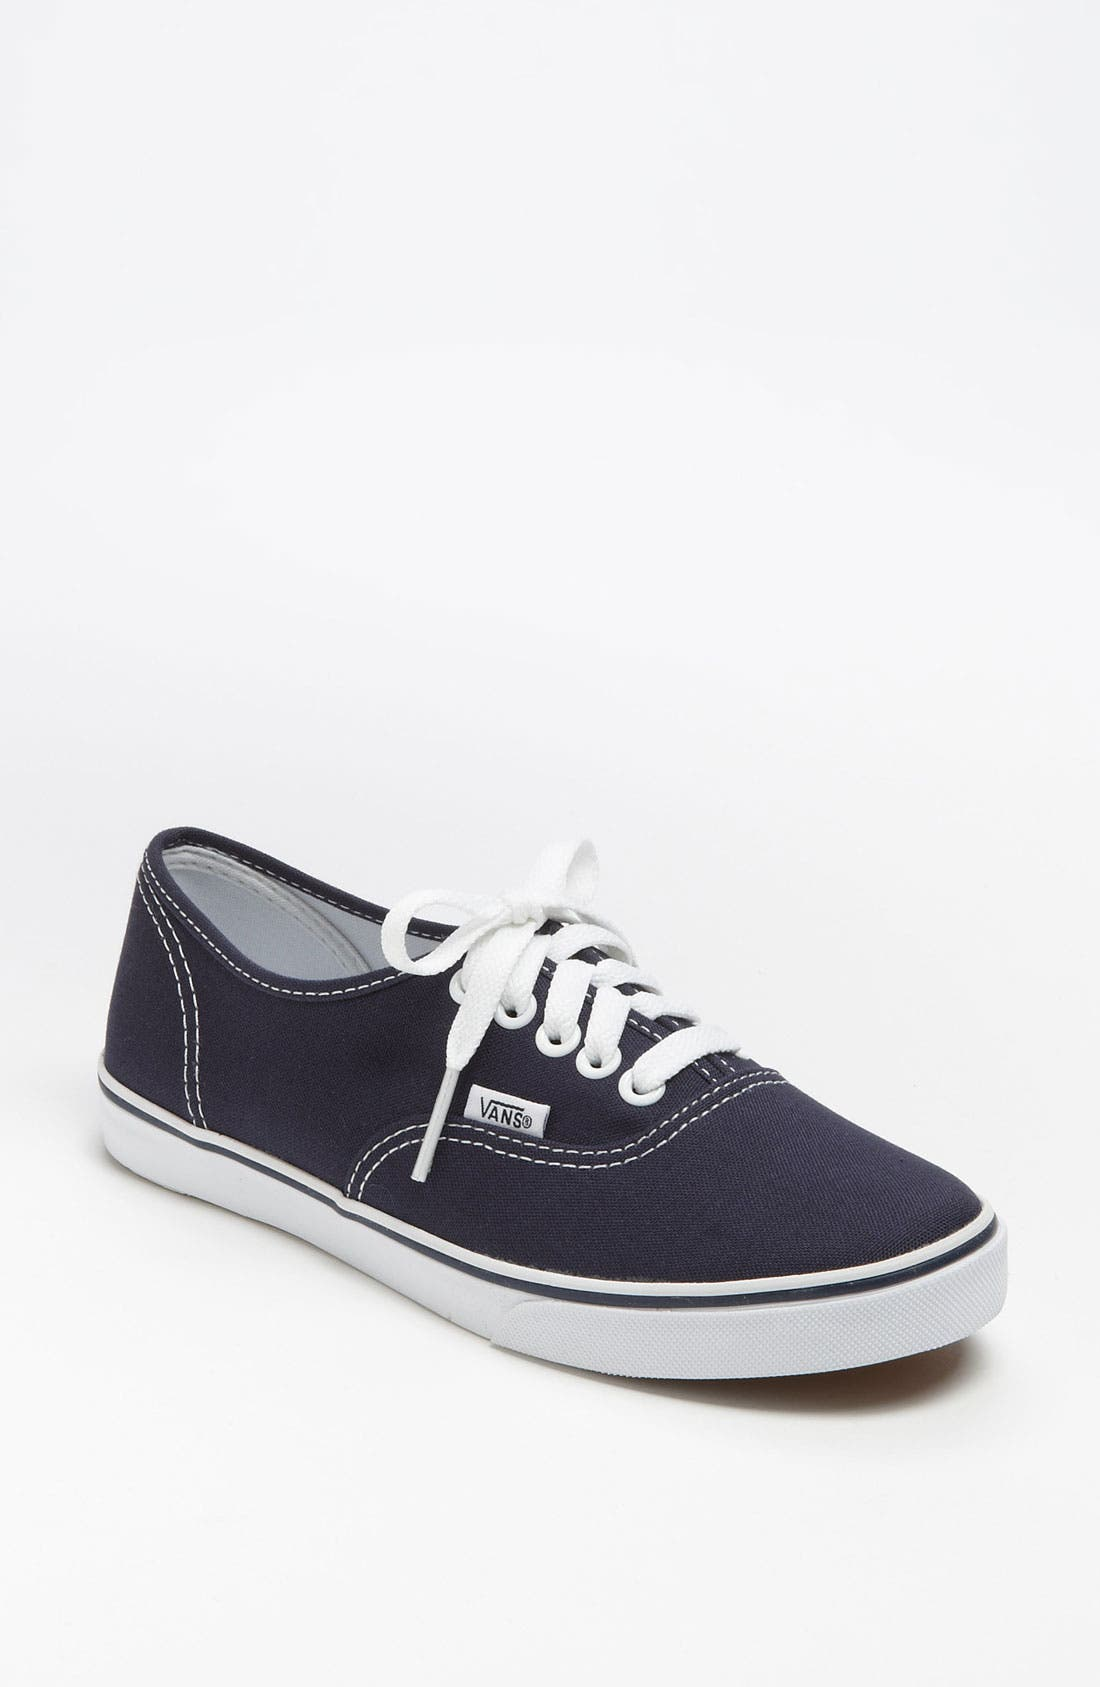 Alternate Image 1 Selected - Vans 'Authentic - Lo Pro' Sneaker (Women)